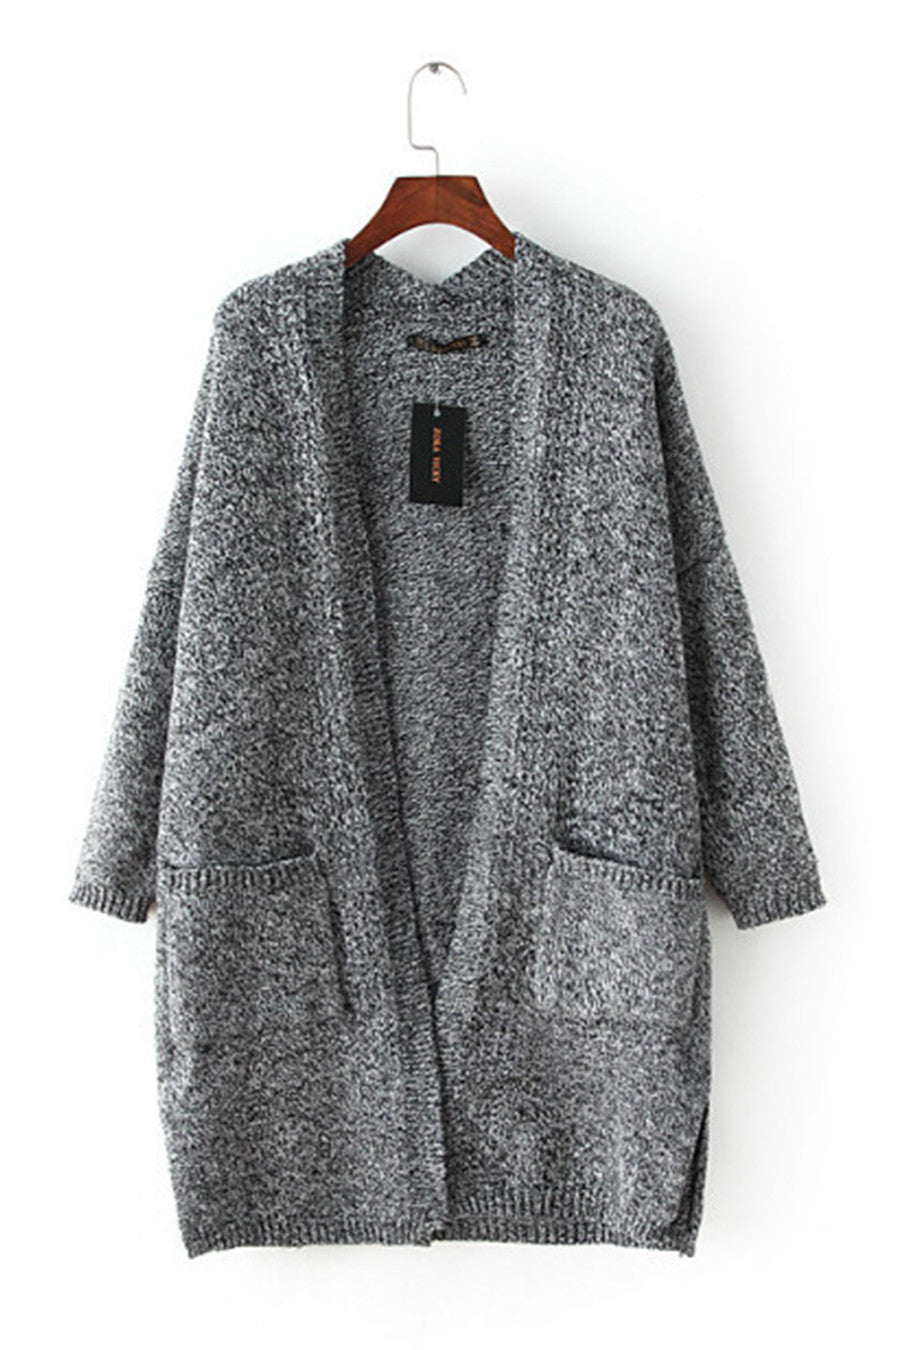 Vintage Long Sleeve Cardigan